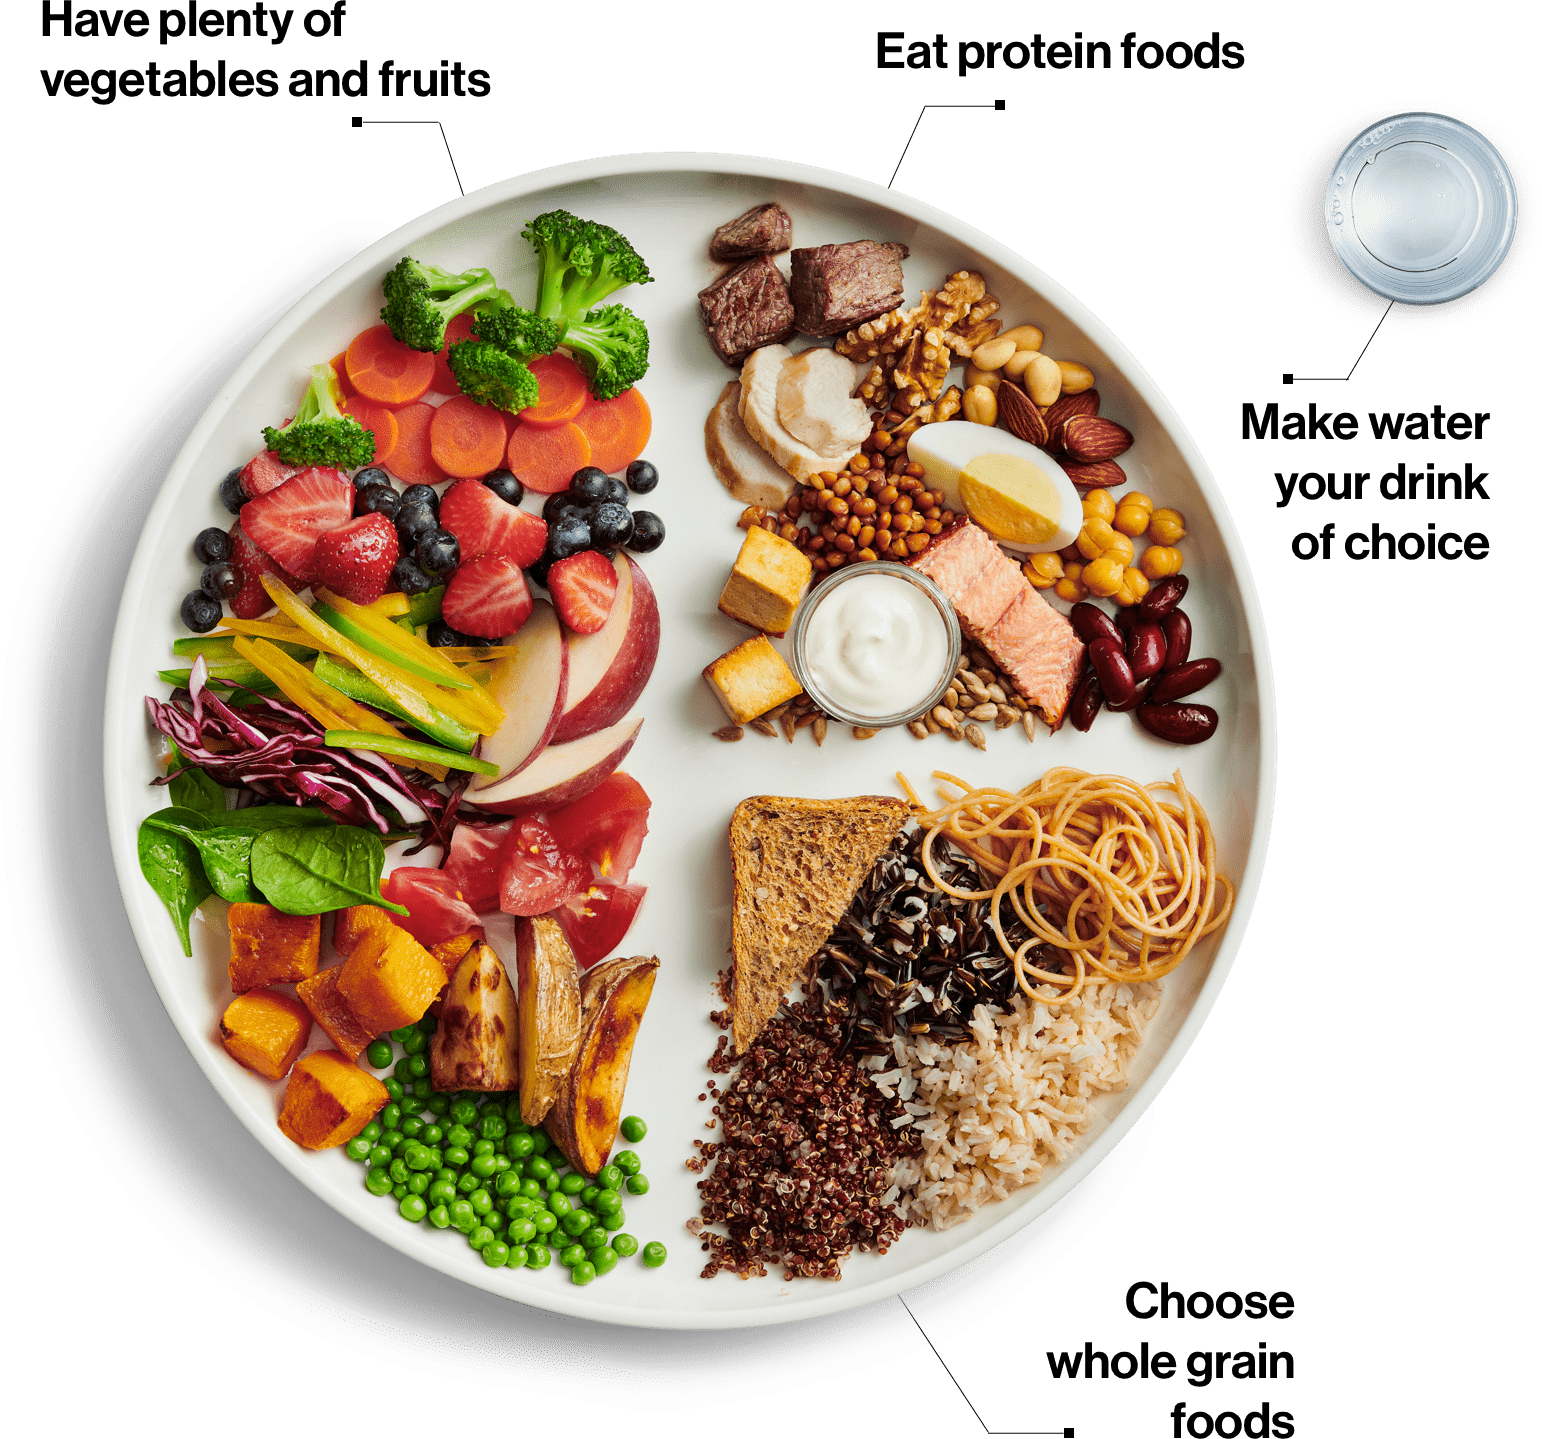 Image: Plate of food with one half vegetables, one quarter protein, one quarter grain foods and a glass of water. Text in the article.